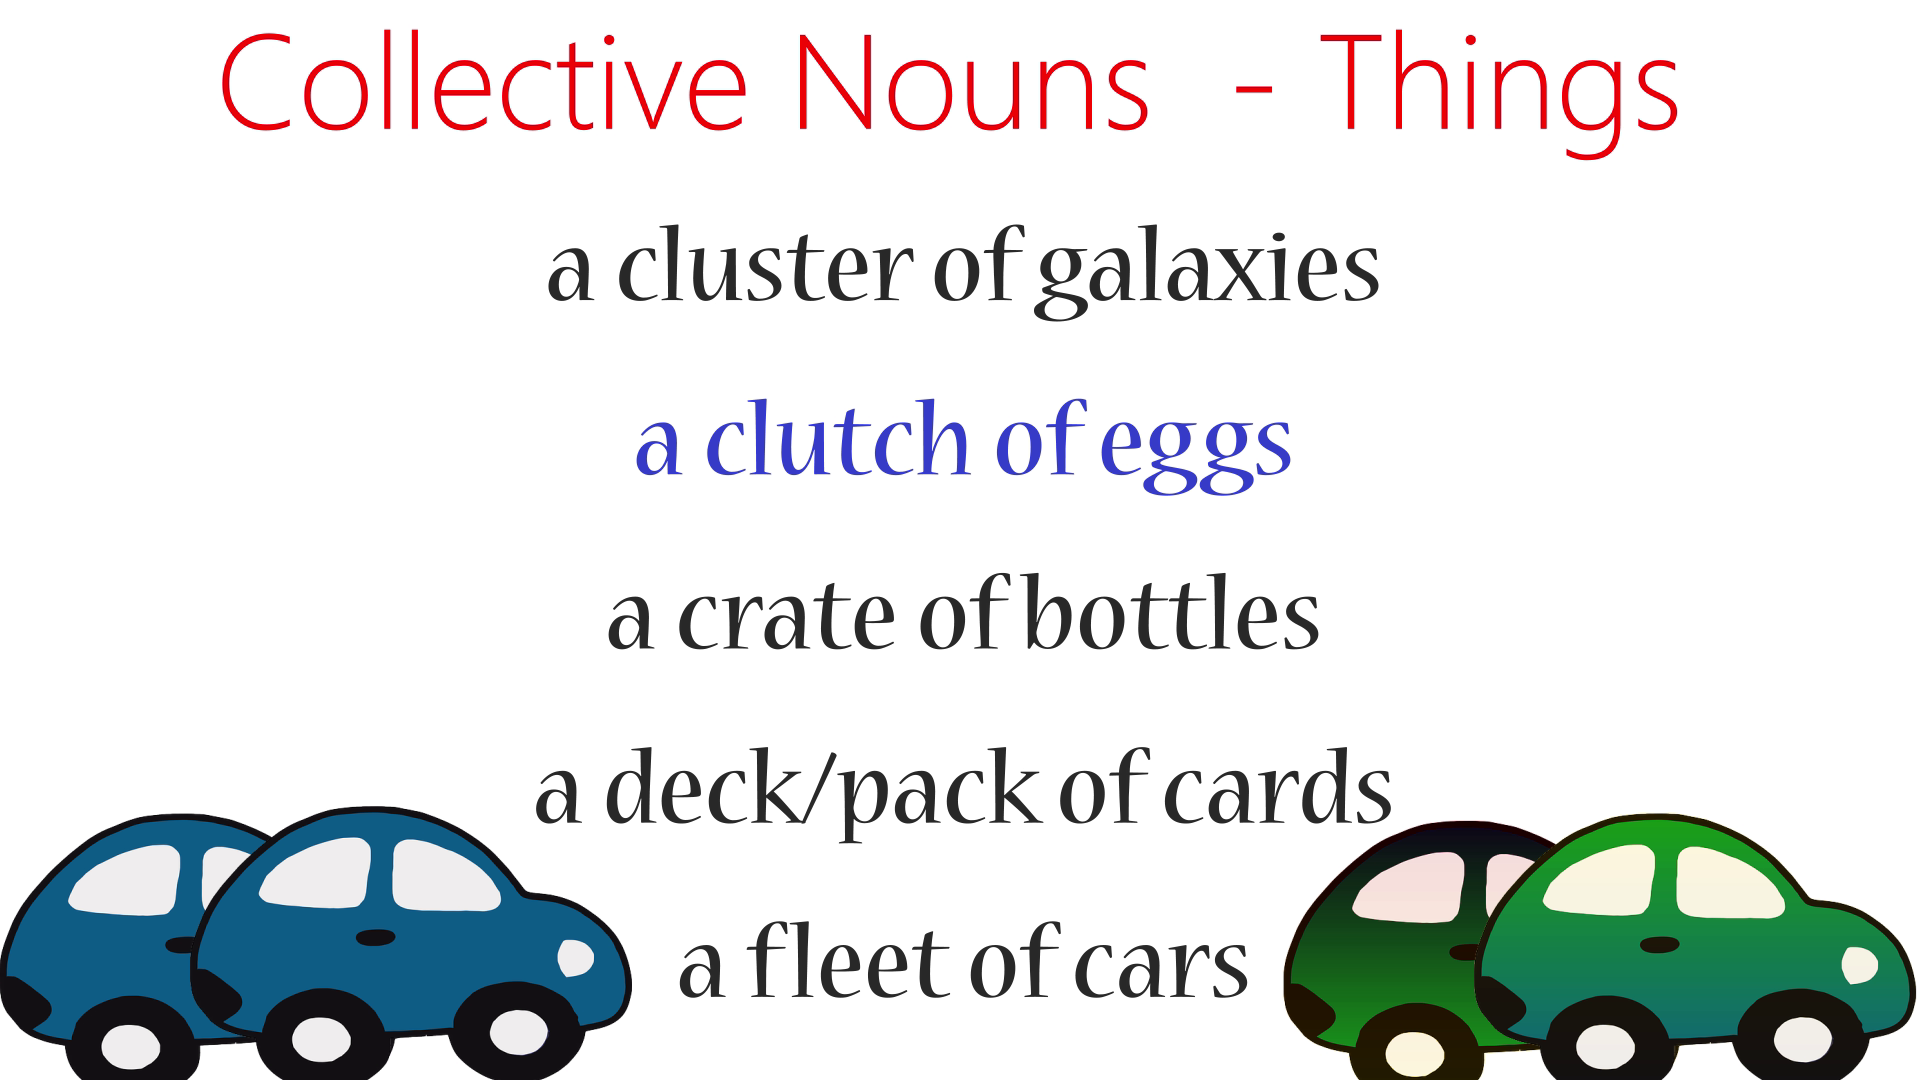 Collective Nouns For Things